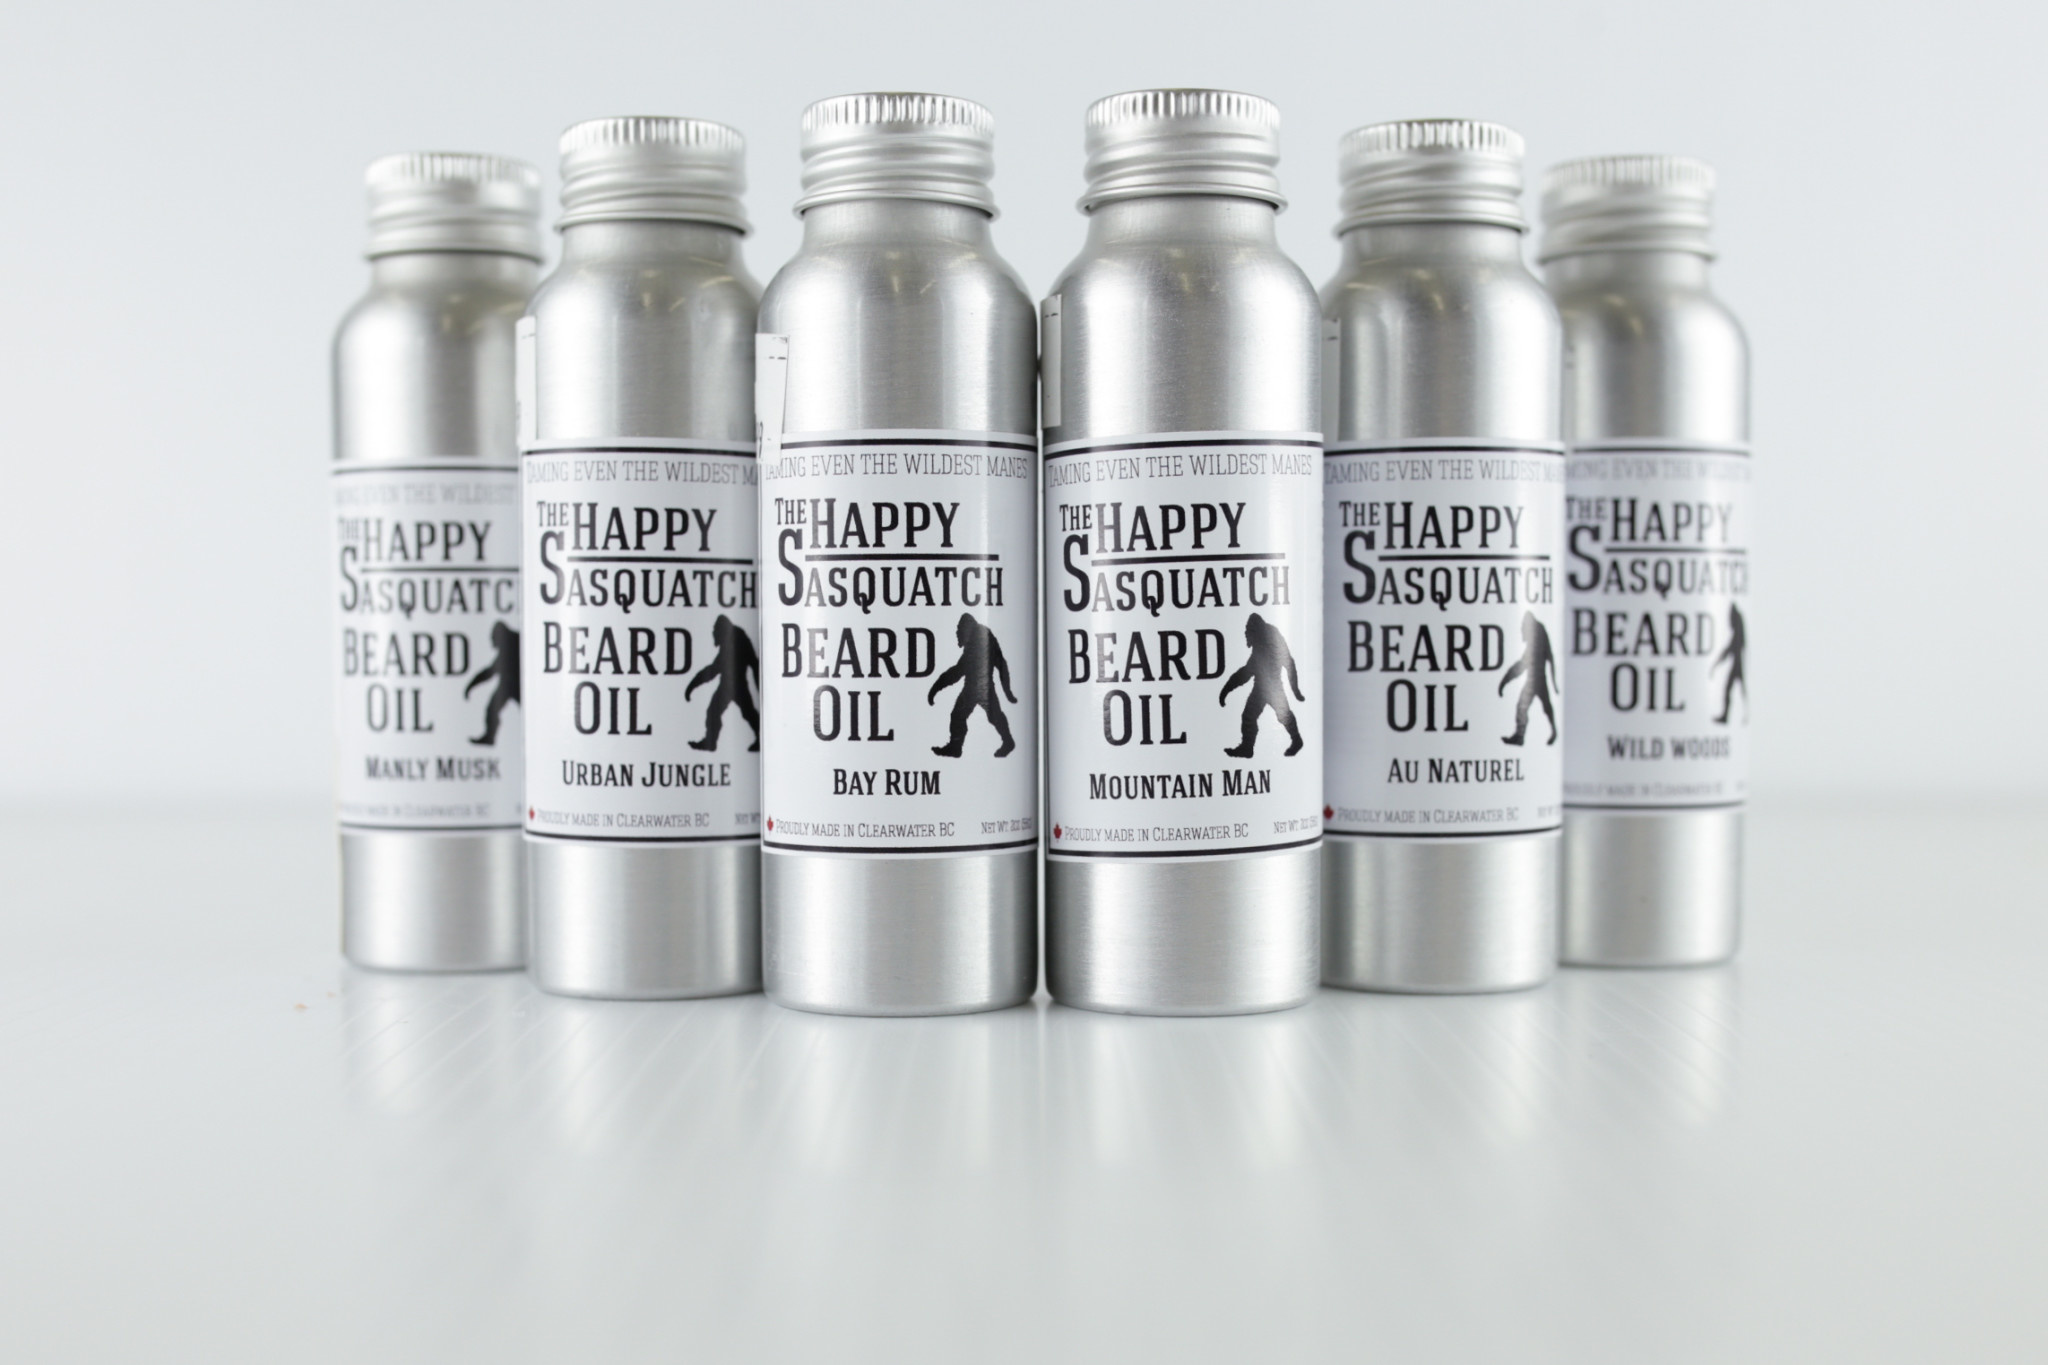 Happy Sasquatch Beard Oil Sea Captain